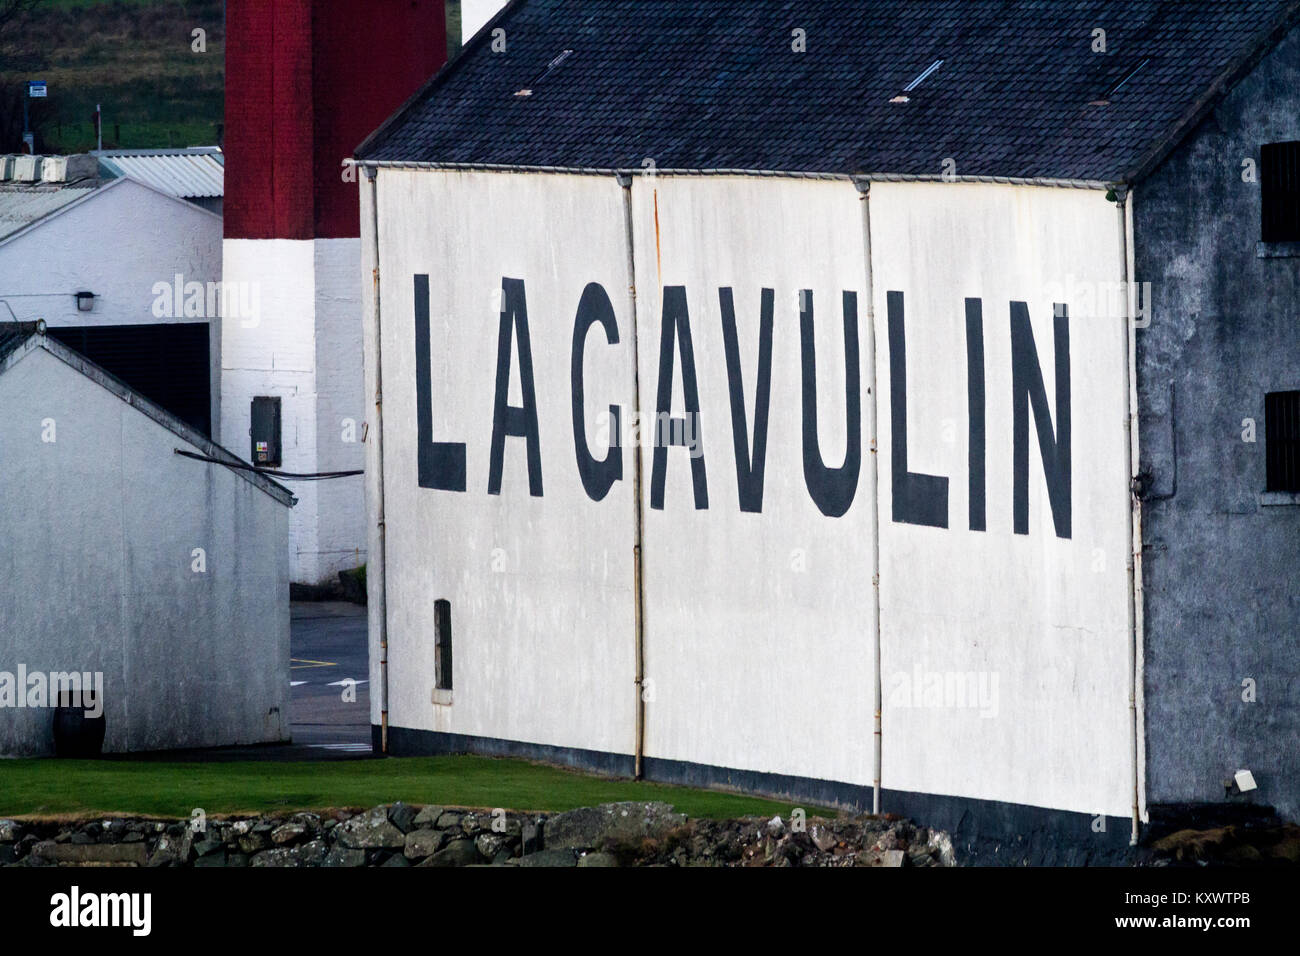 Close up of the outside of Lagavulin Whisky Distillery big black letters on whitewashed walls, Isle of Islay, Scotland - Stock Image